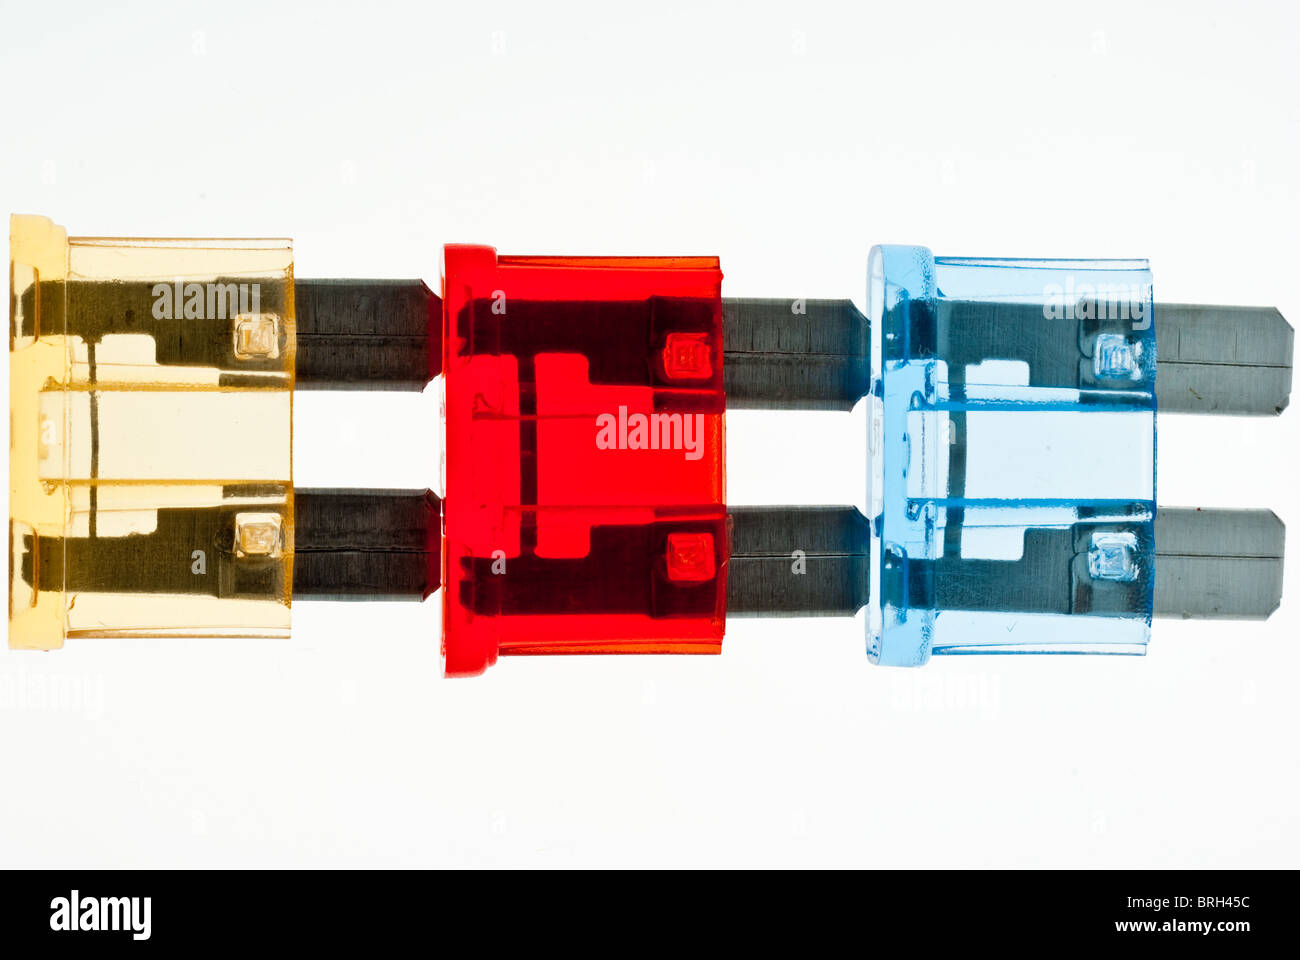 Blade fuses for use in cars and automobiles - Stock Image